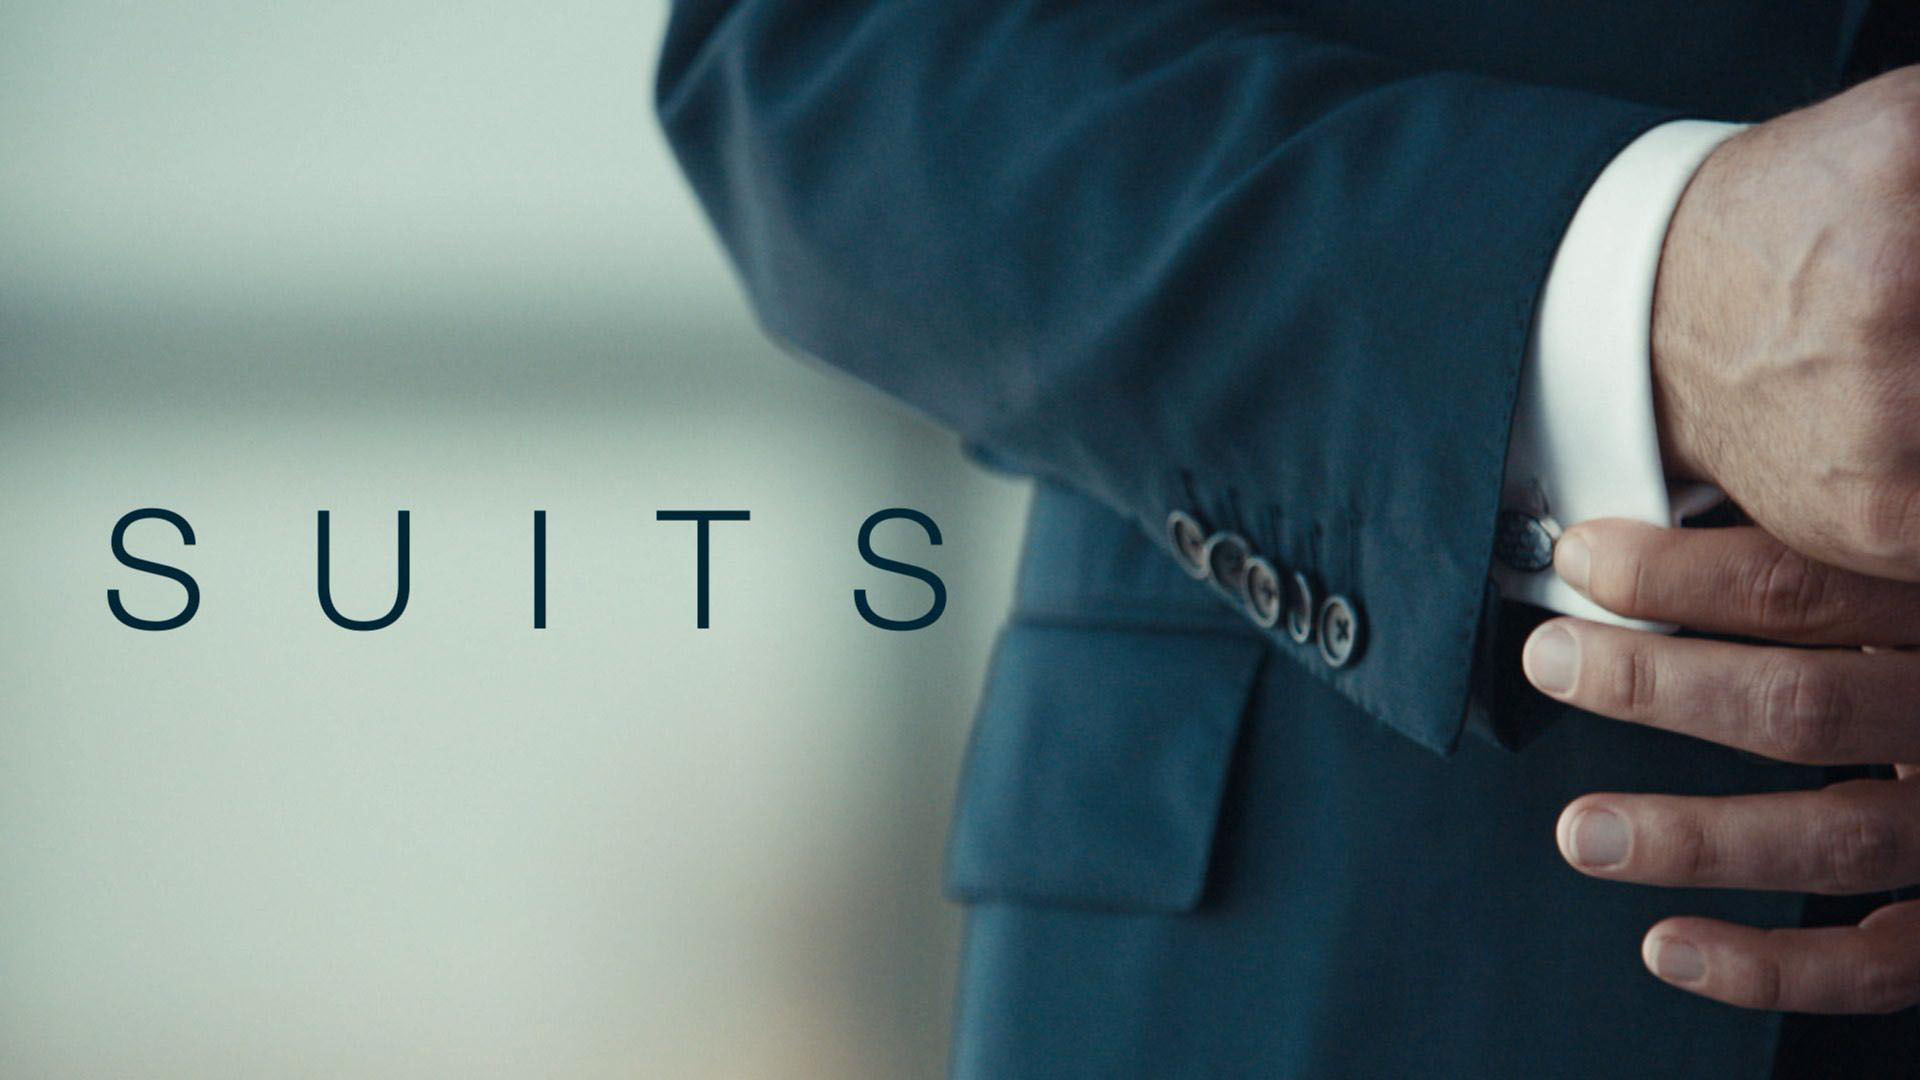 Suits-TV-Poster-Wallpaper